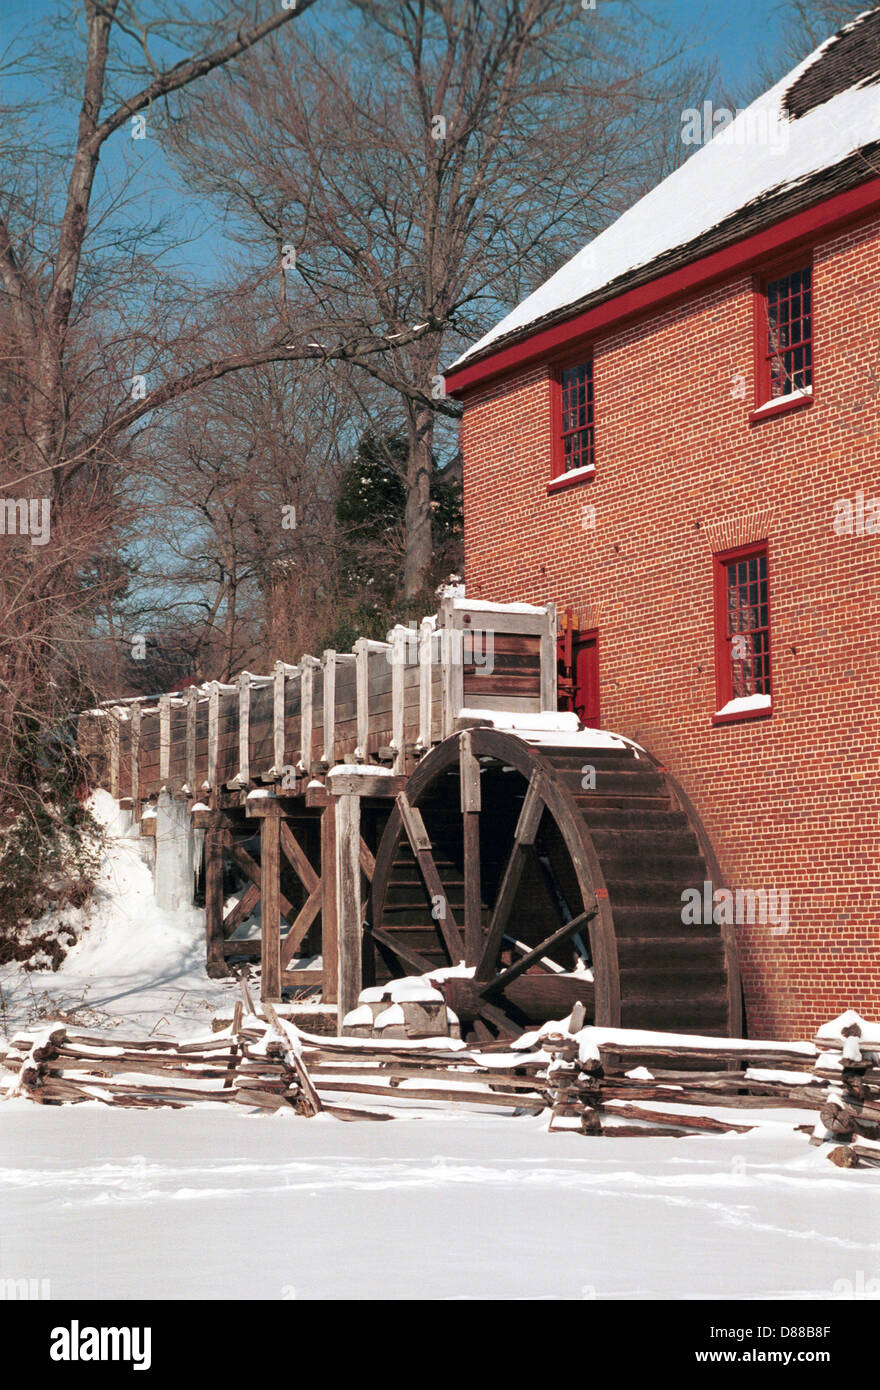 Colvin Run Mill gable roofed brick structure built 1802 Fairfax Virginia, Grist mill winter snow Virginia,Mill for - Stock Image